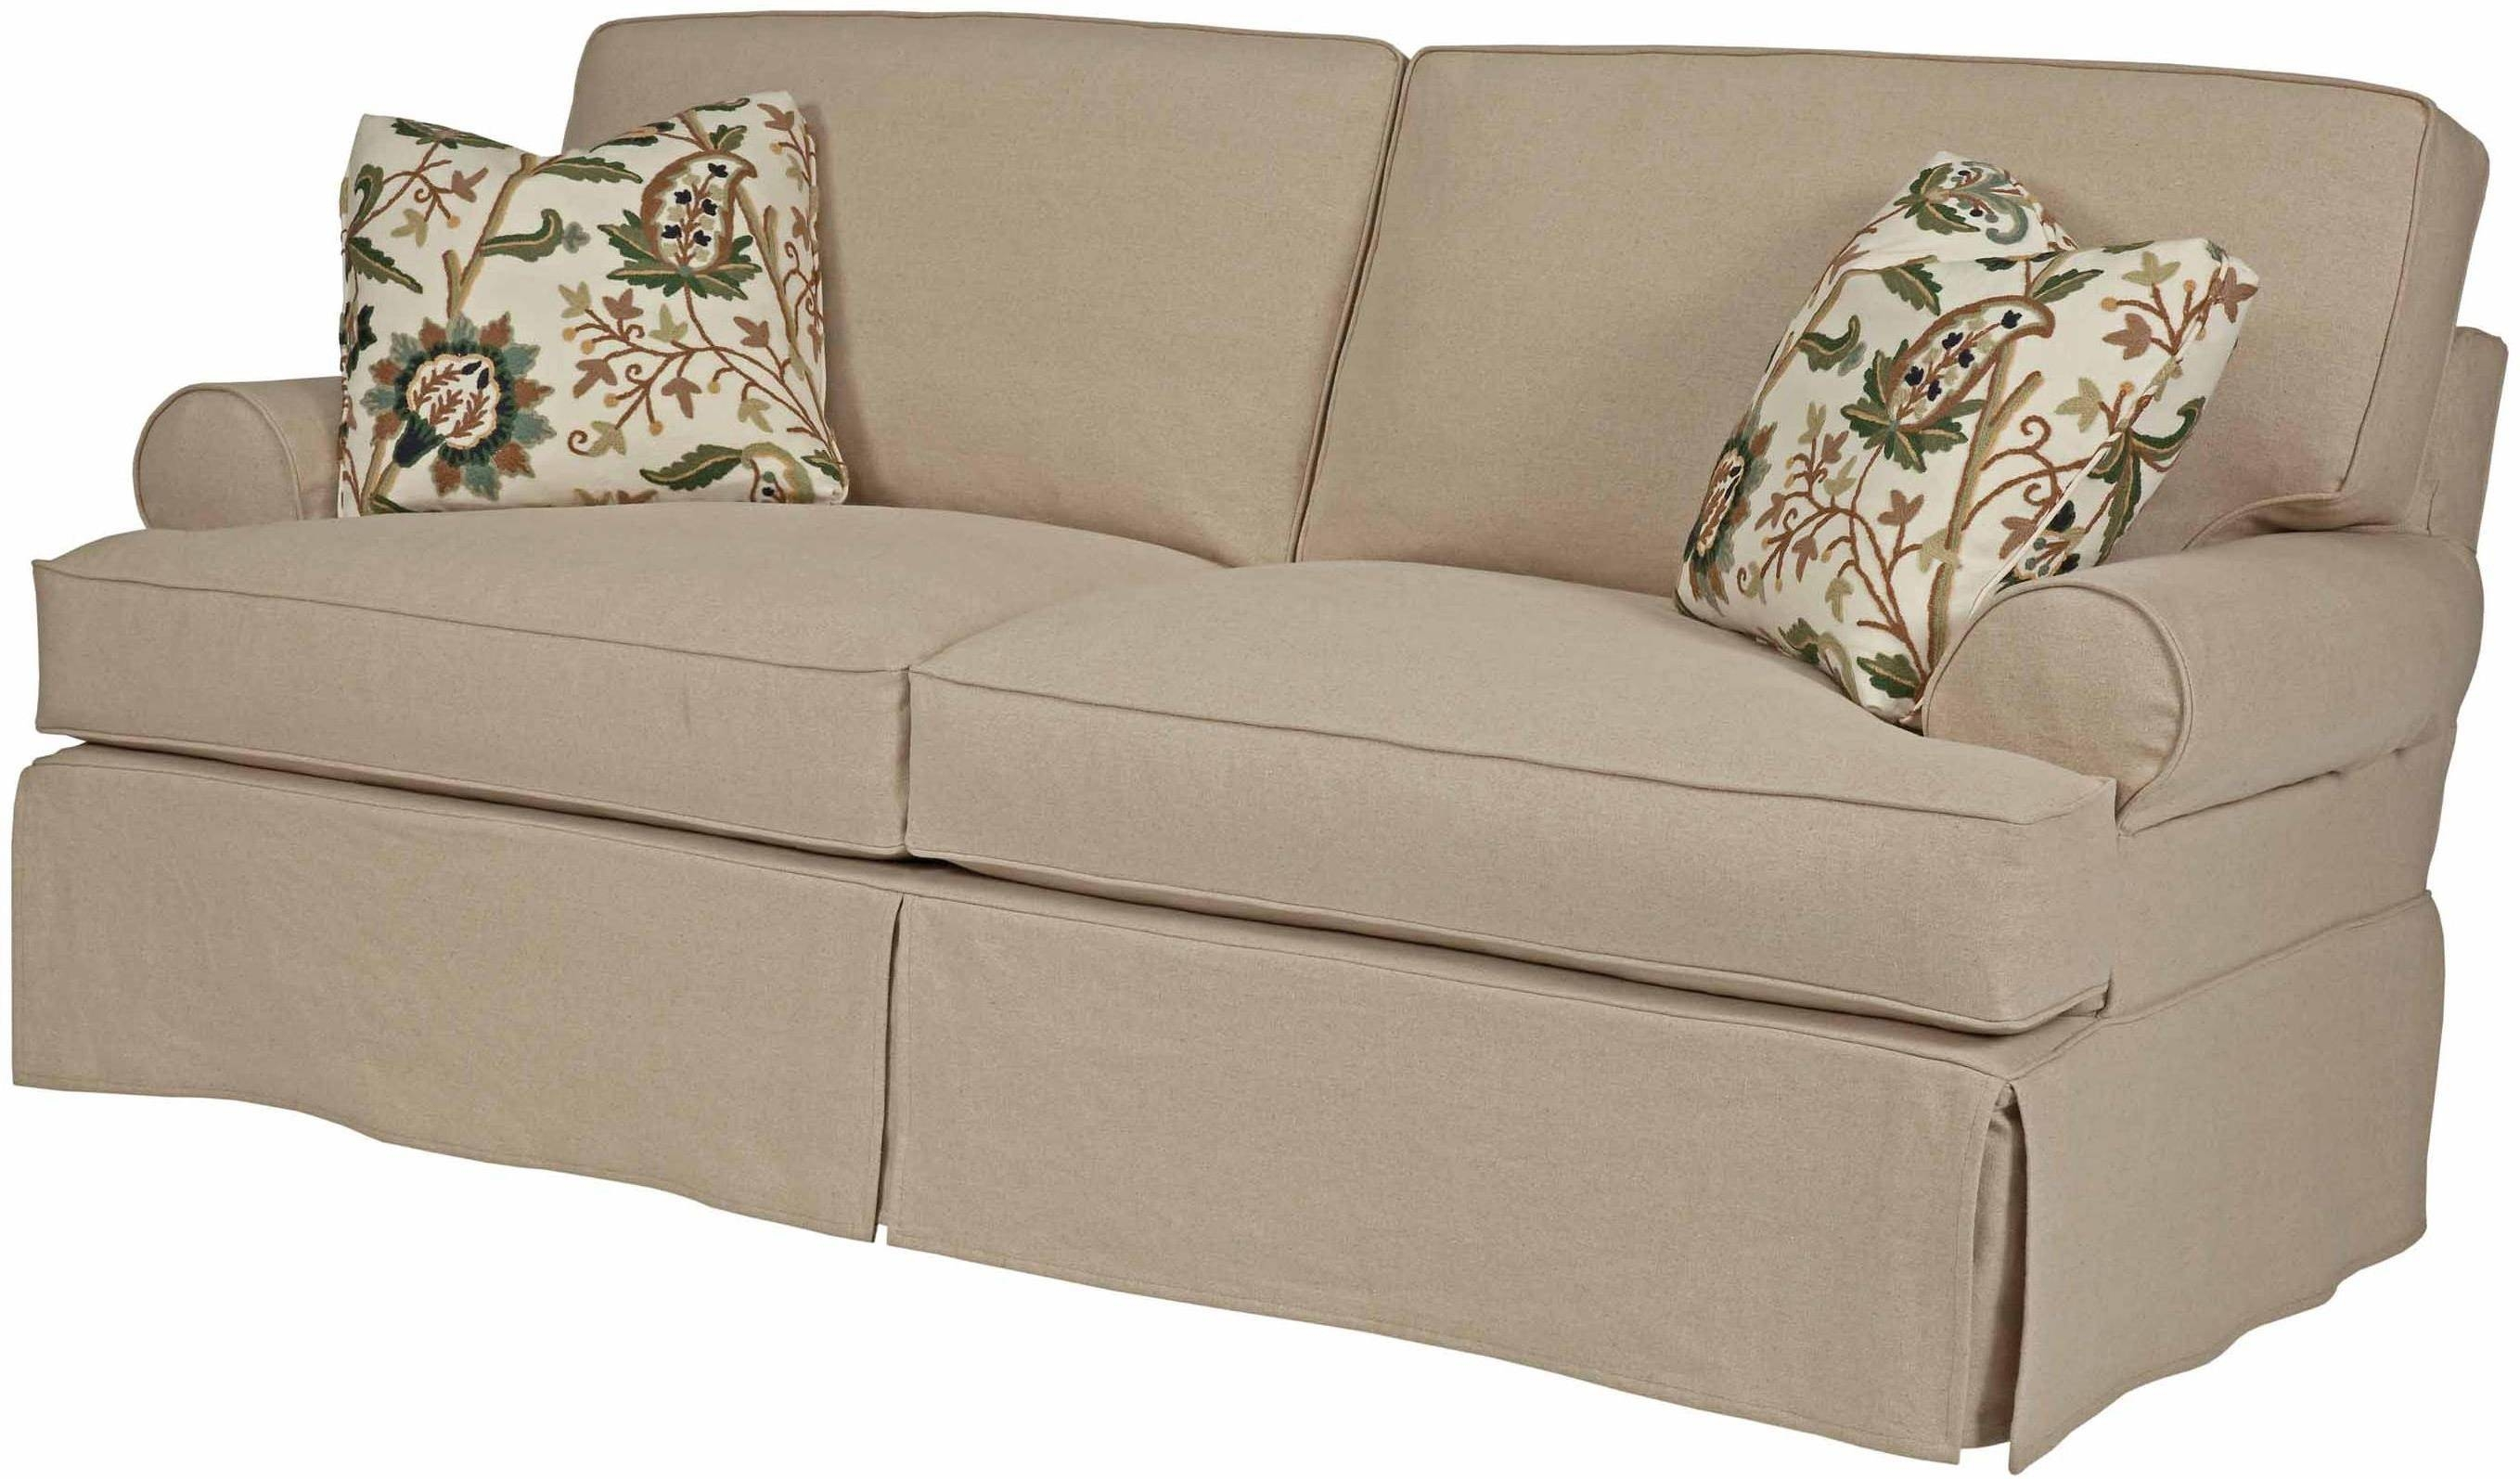 Furniture: Slipcovers For Couch | Sofa Cushion Covers | inside Sofa Cushion Covers (Image 6 of 15)